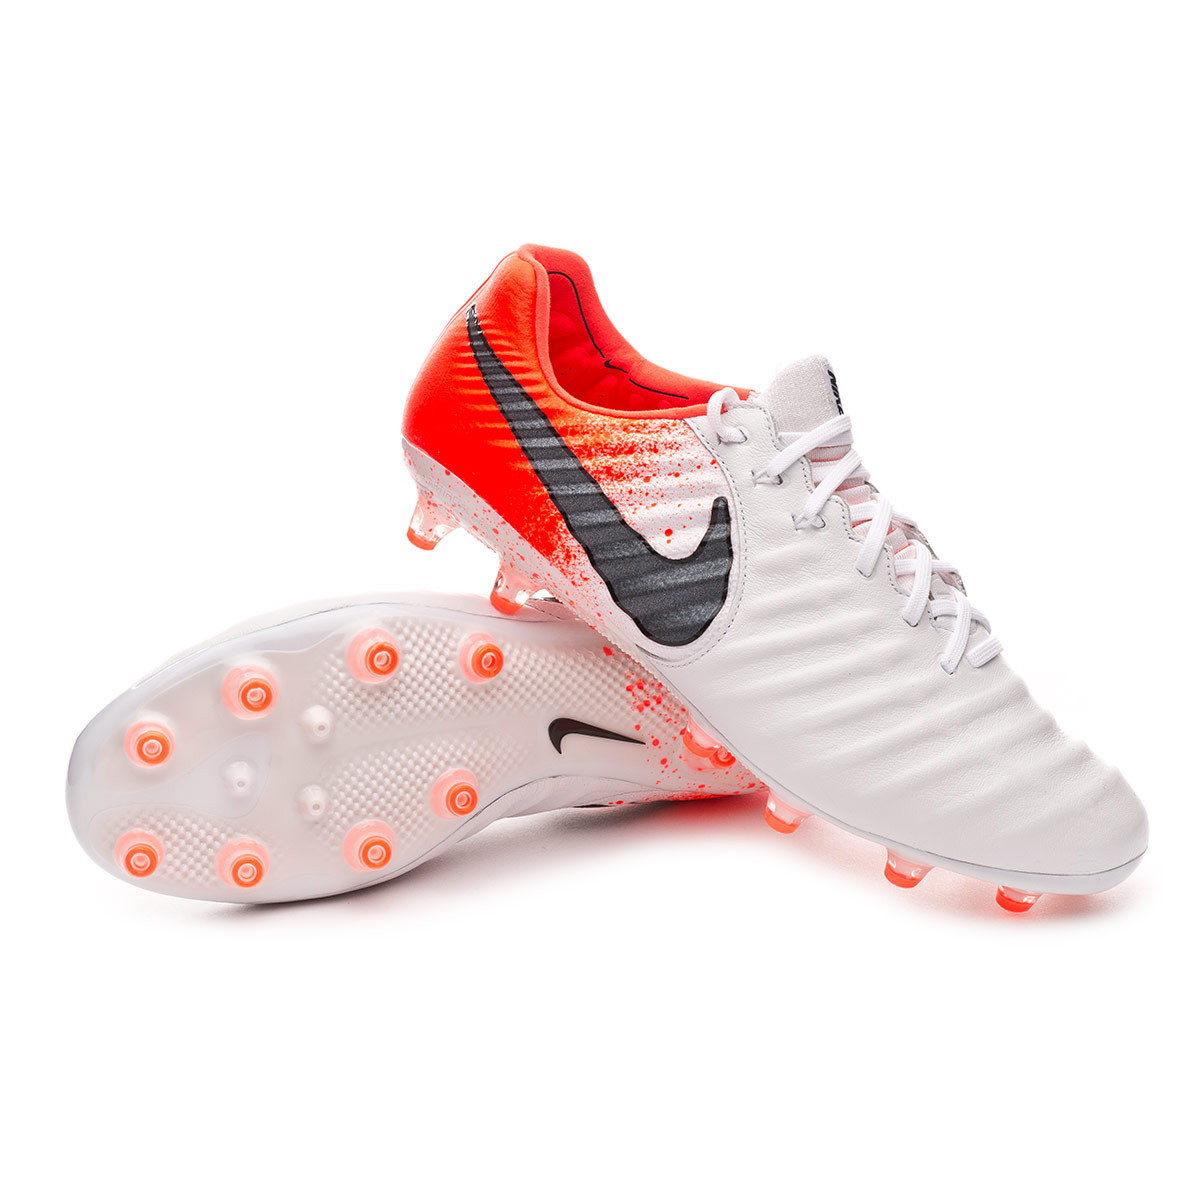 Bota Tiempo Legend VII Elite AG Pro White Black Hyper crimson